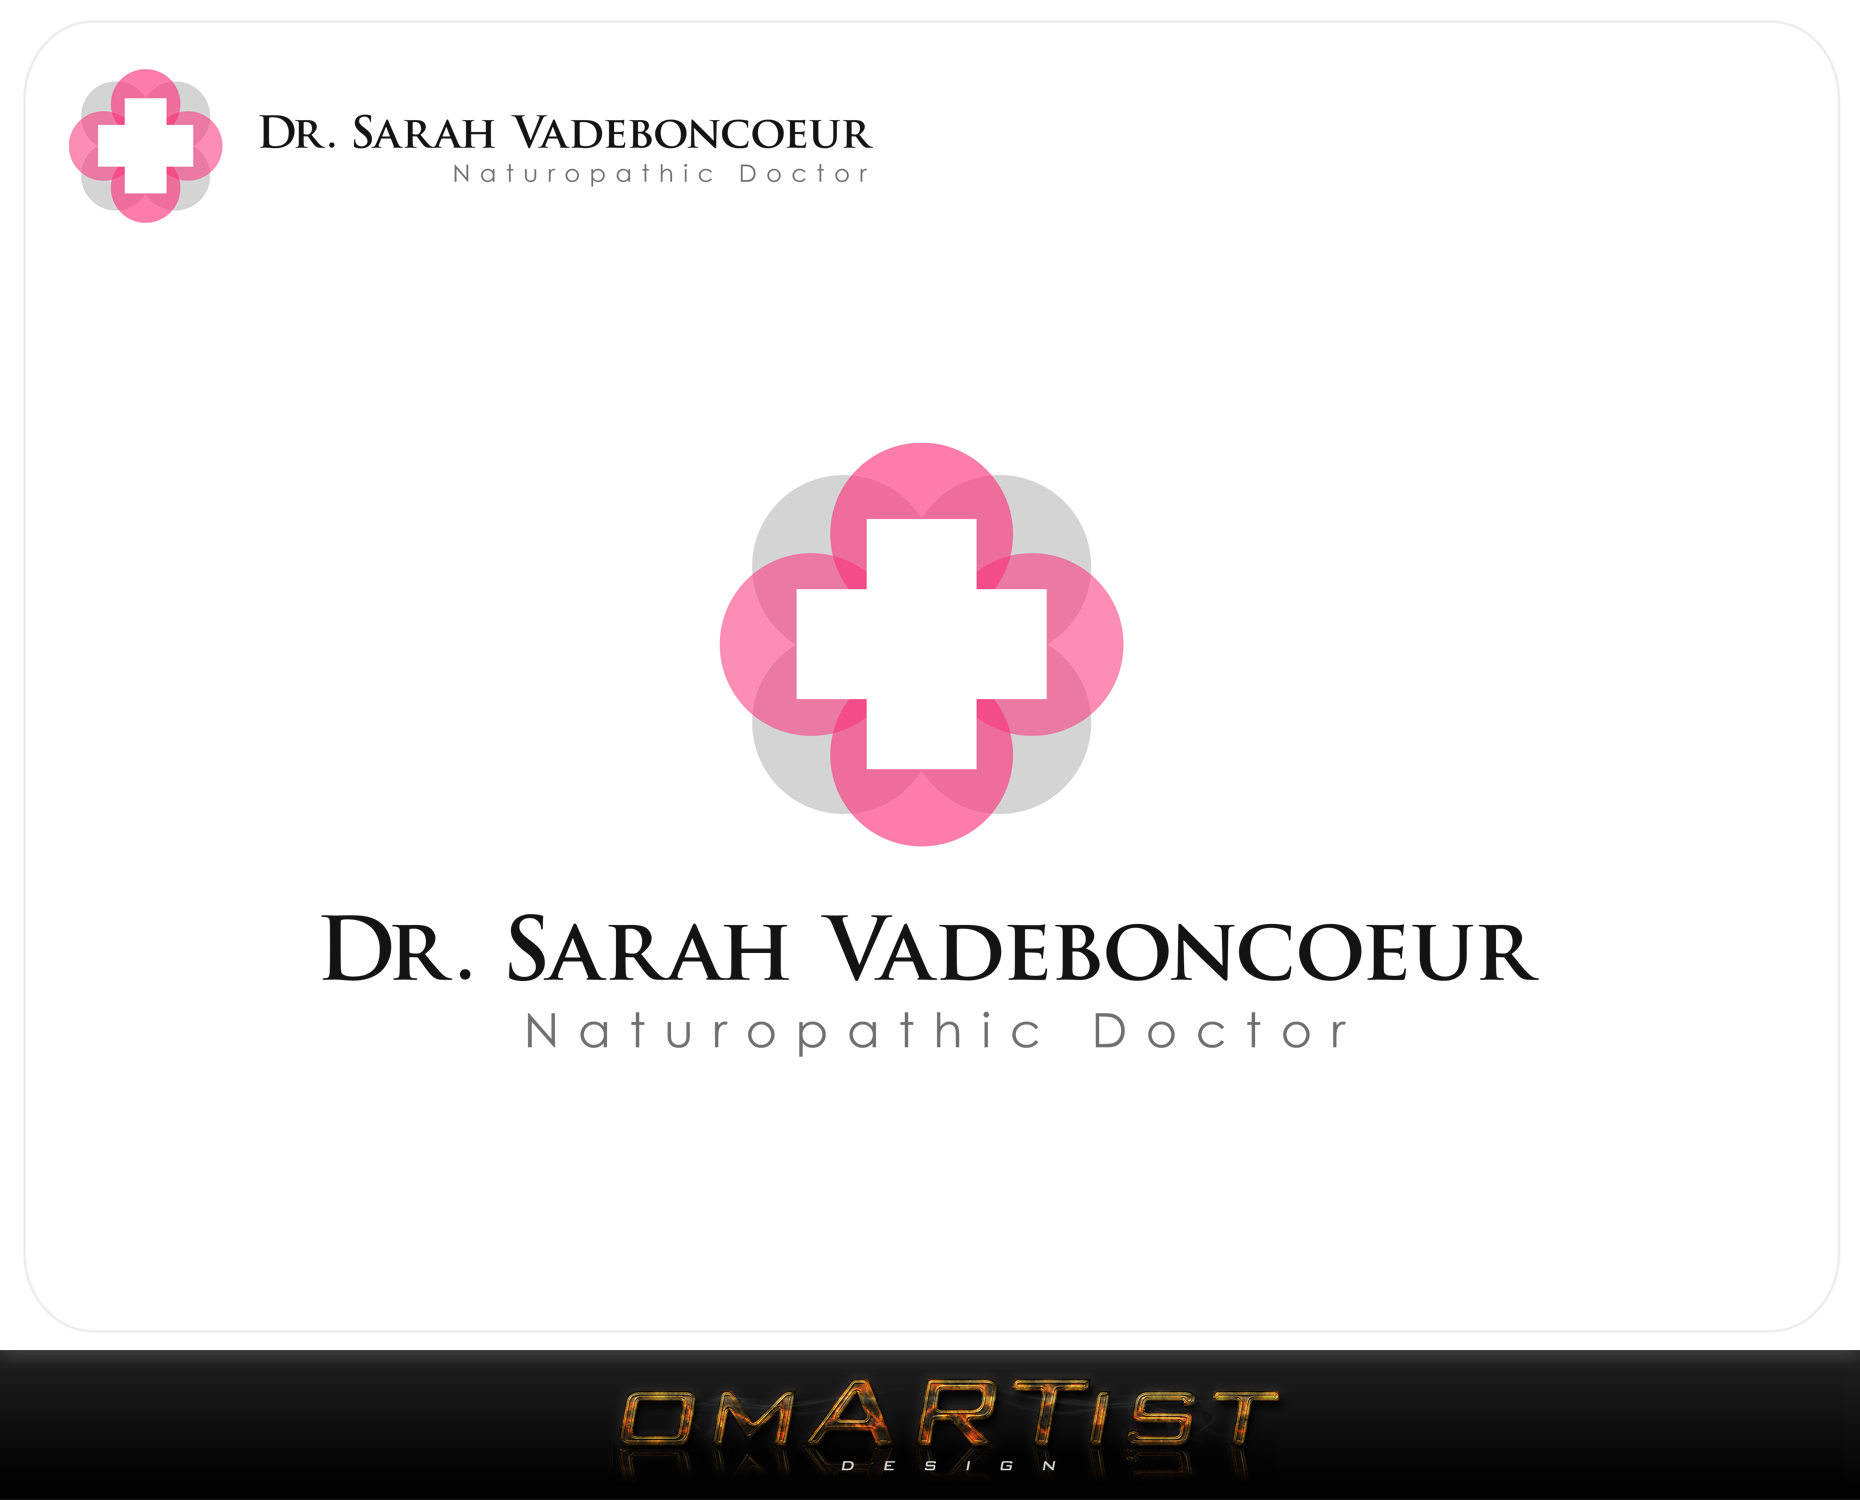 Logo Design by omARTist - Entry No. 69 in the Logo Design Contest New Logo Design for Dr. Sarah Vadeboncoeur, Naturopathic Doctor.